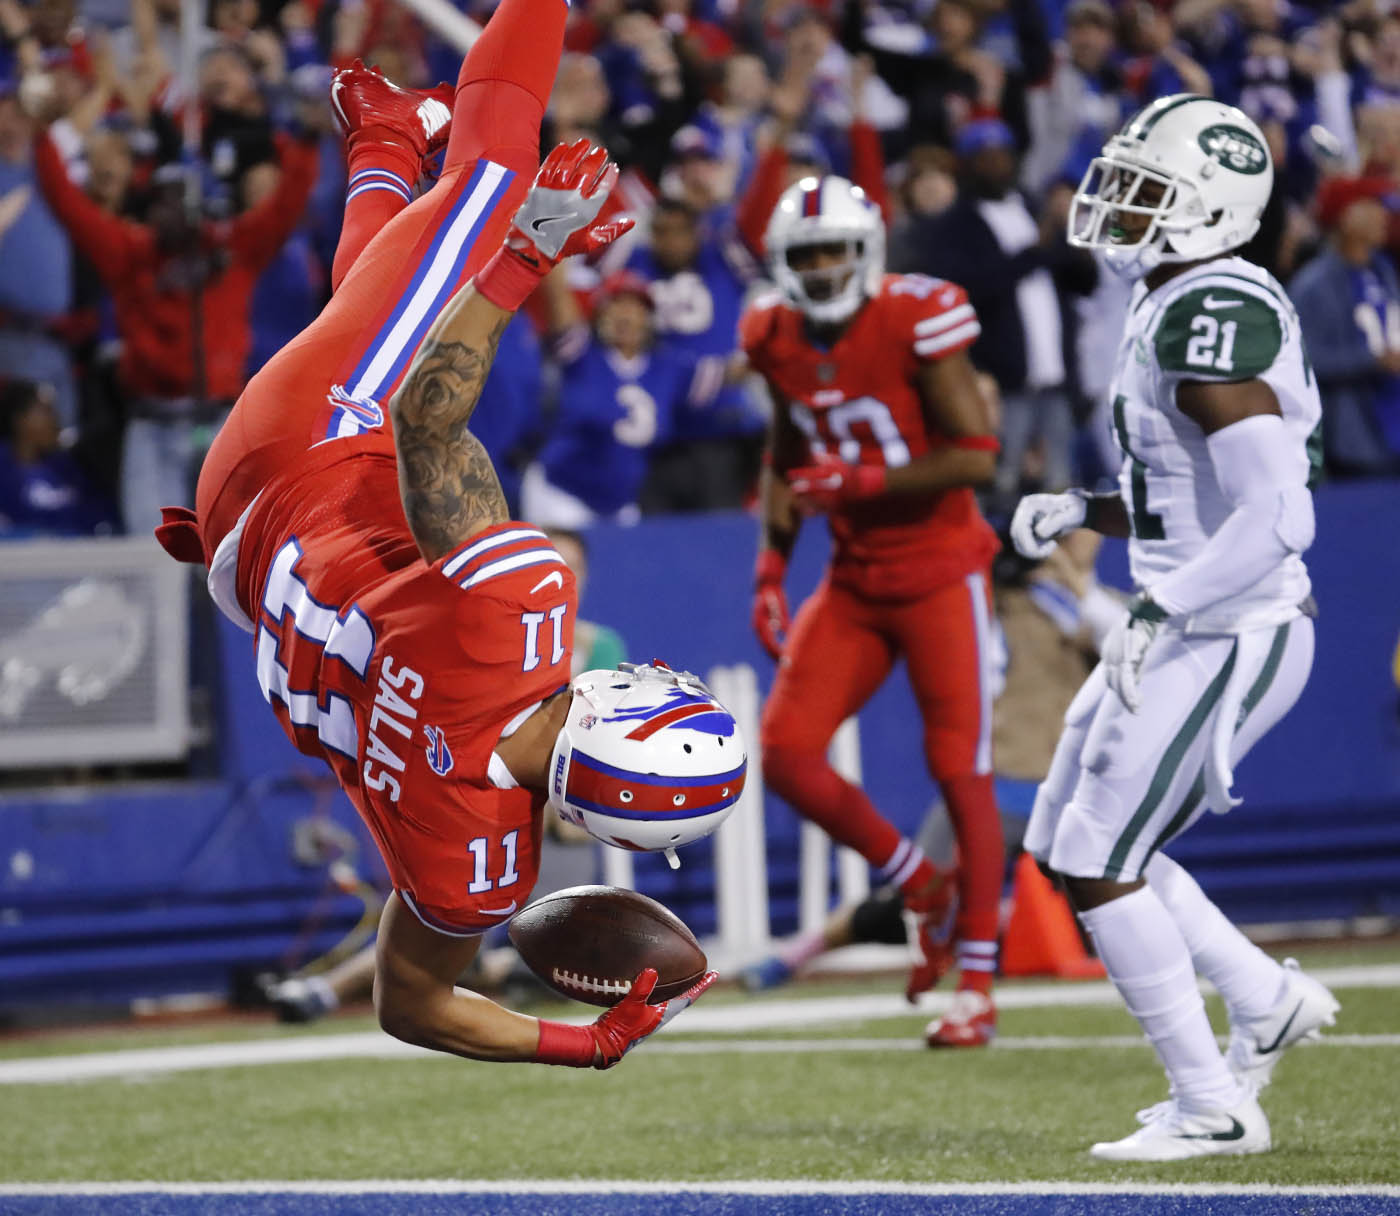 Pictures, Buffalo Bills wide receiver Greg Salas (11) scores a 71-yard touchdown reception agains the New York Jets during the third quarter at New Era Field on Thursday, Sept. 15, 2016. (Harry Scull Jr./Buffalo News)